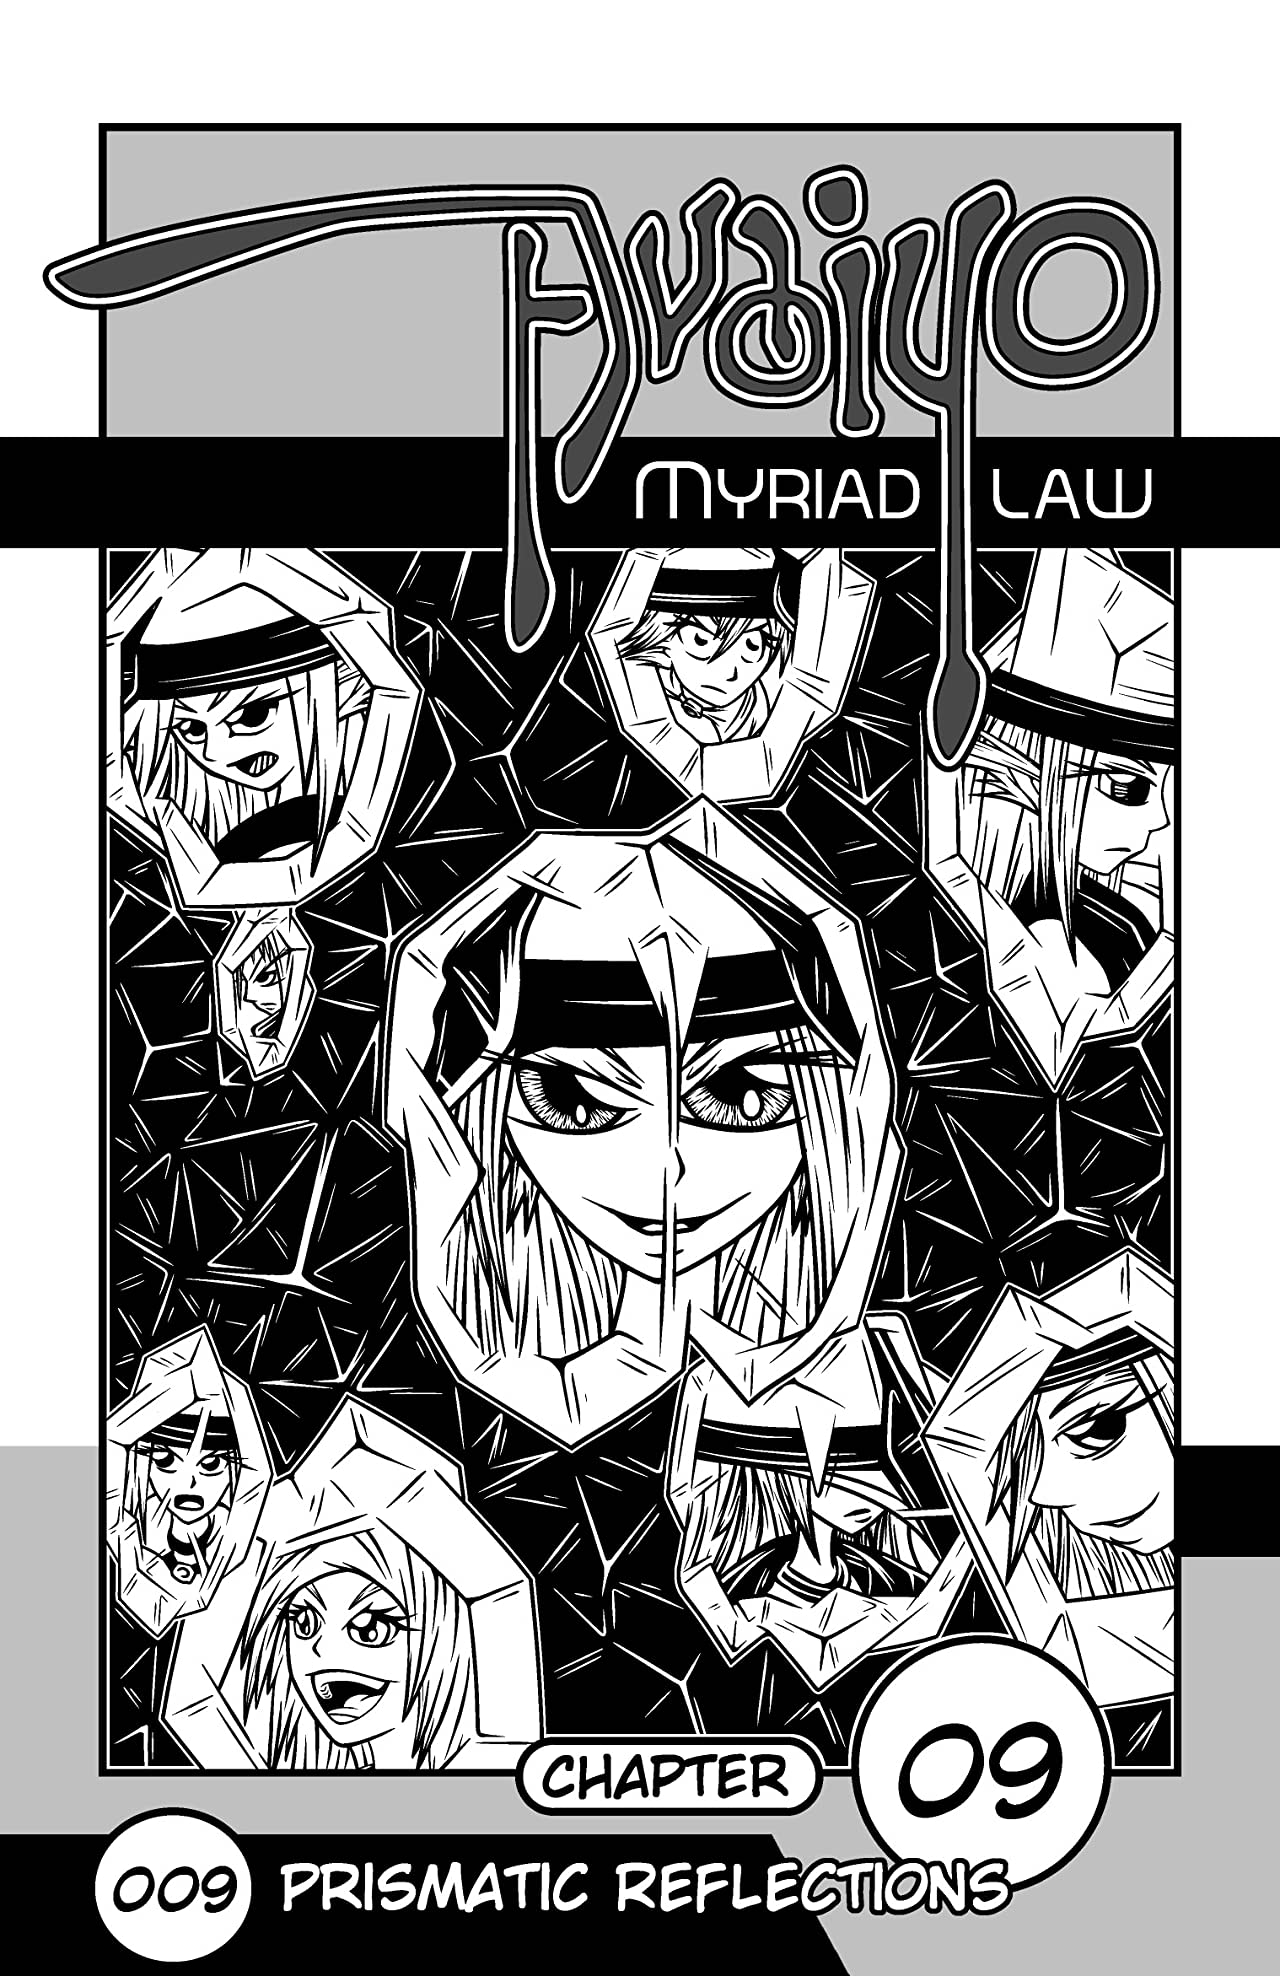 Avaiyo: Myriad Law #009